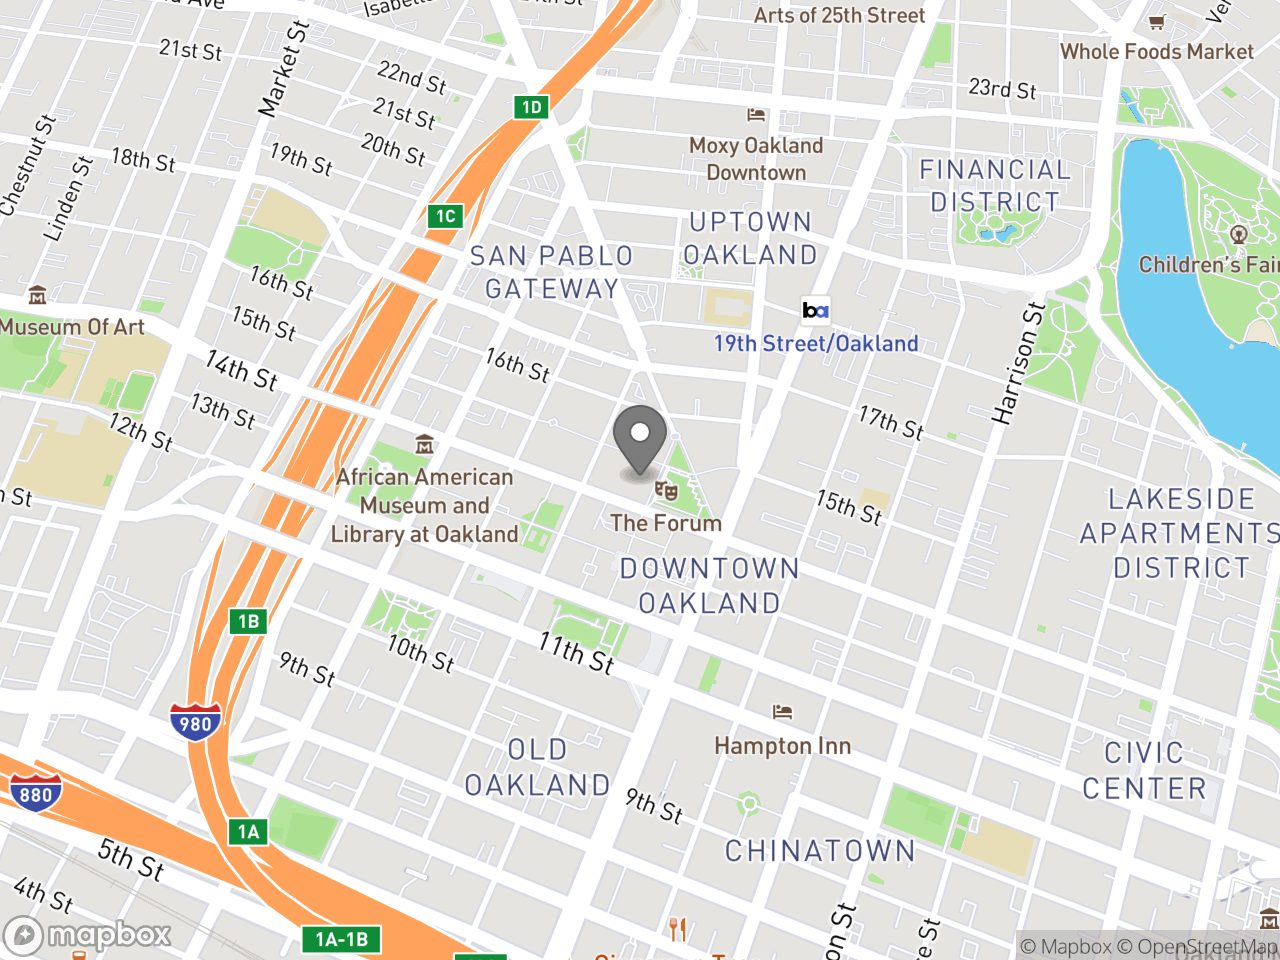 Map location for City Council, located at 1 Frank H Ogawa Plaza in Oakland, CA 94612